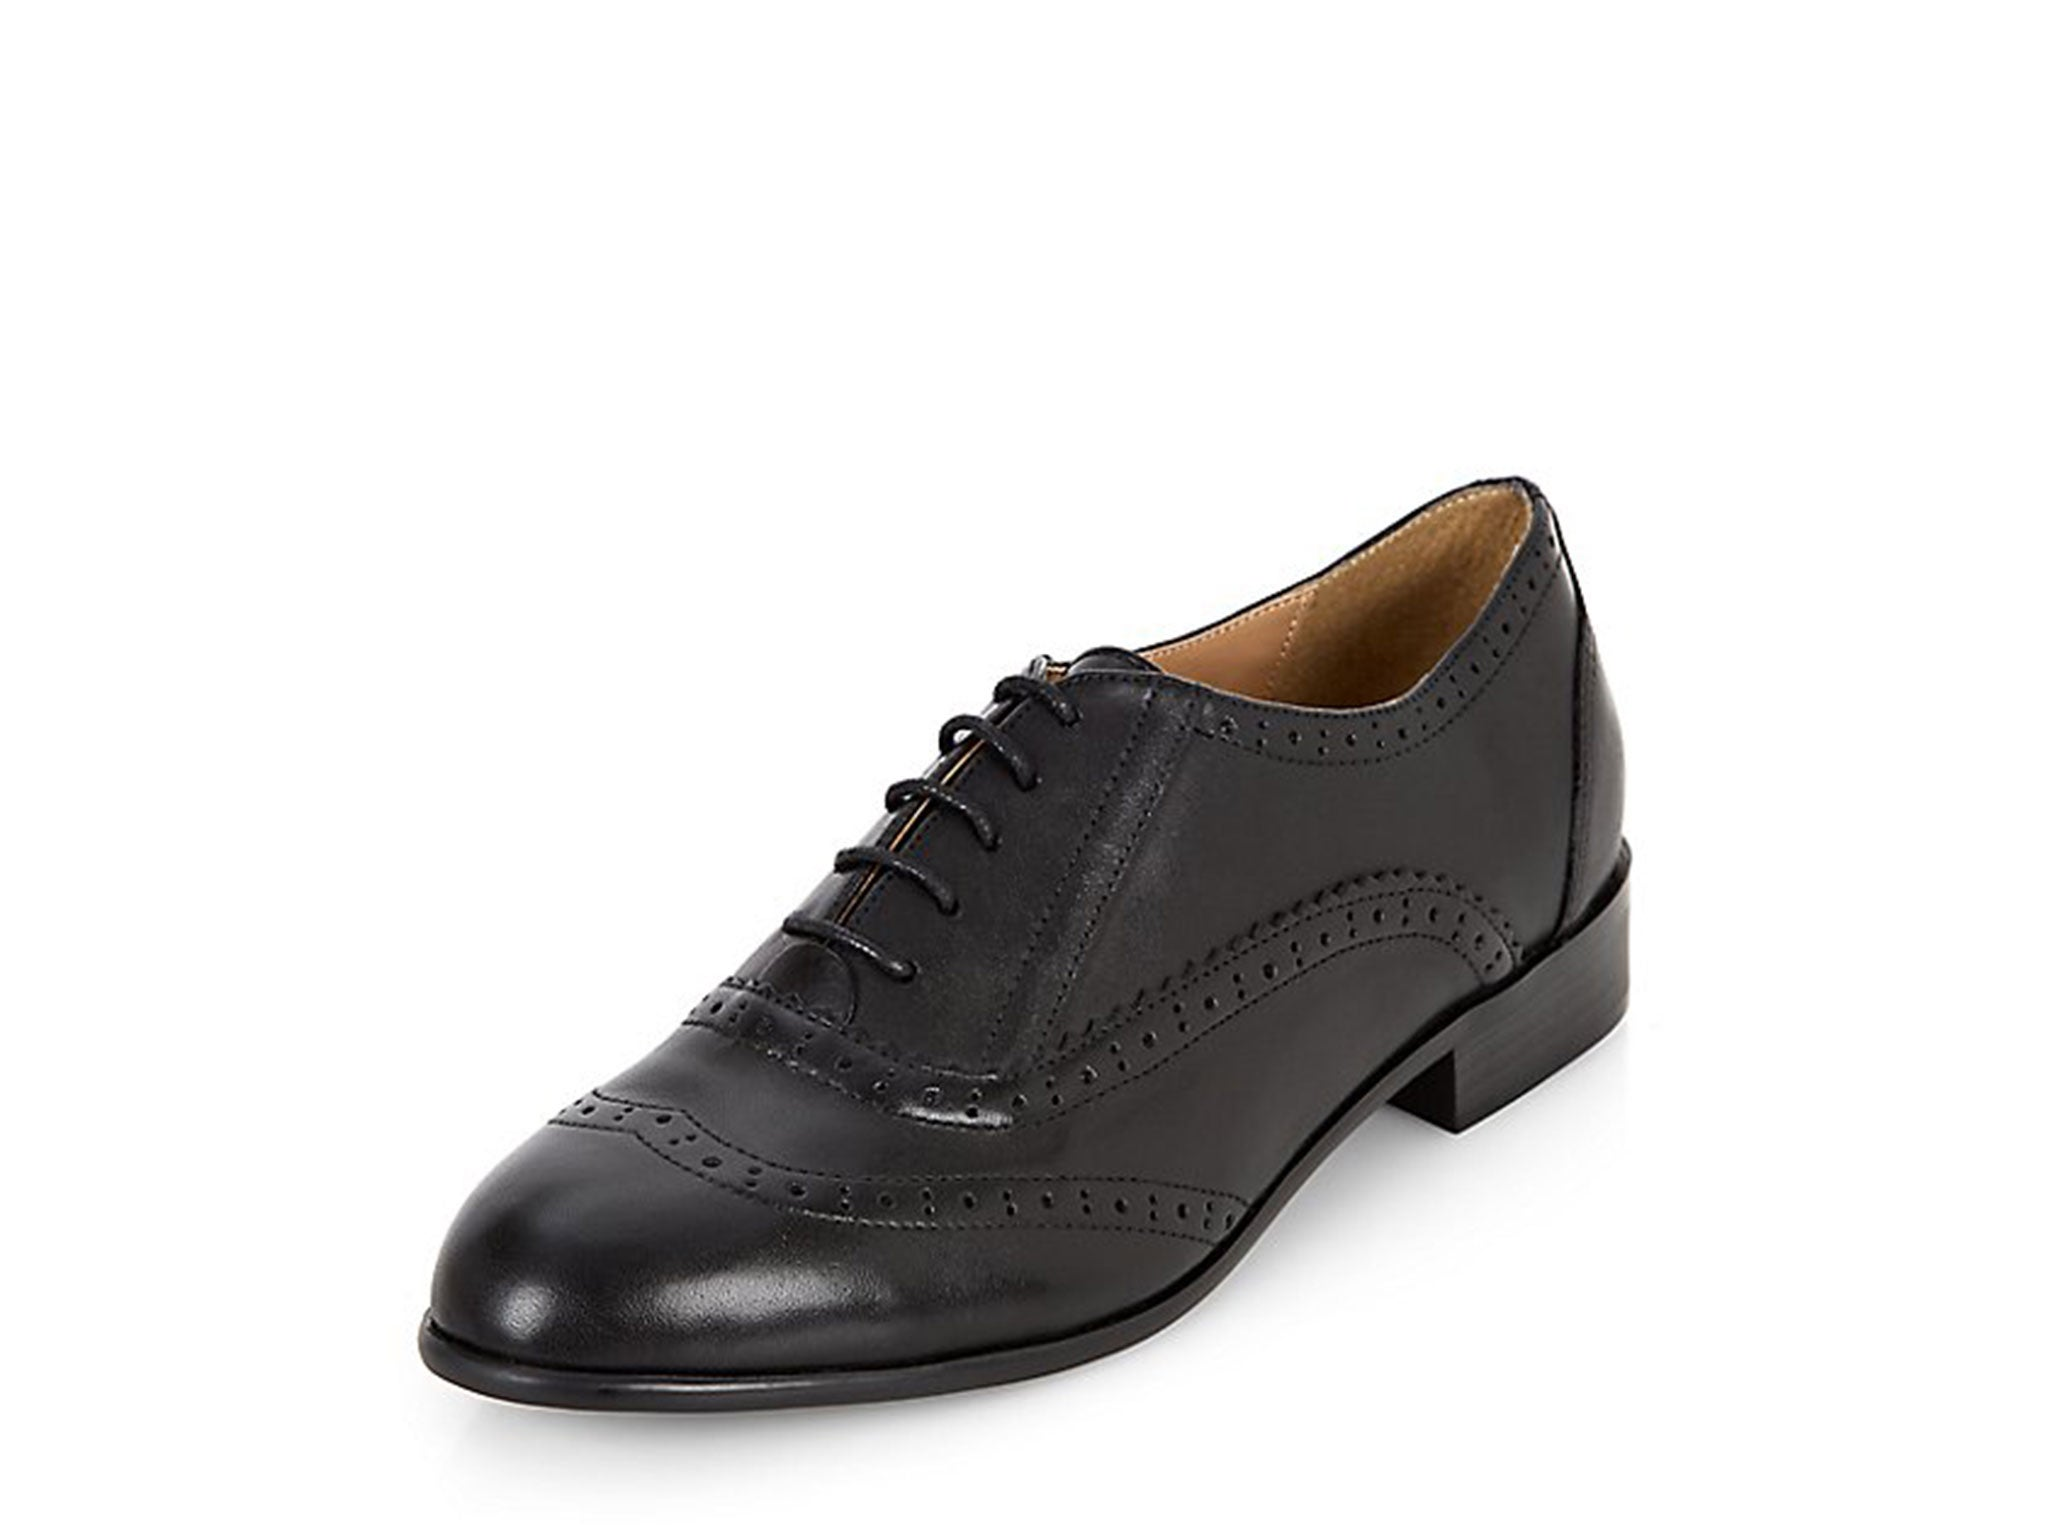 840d3c457e 12 best women's brogues | The Independent